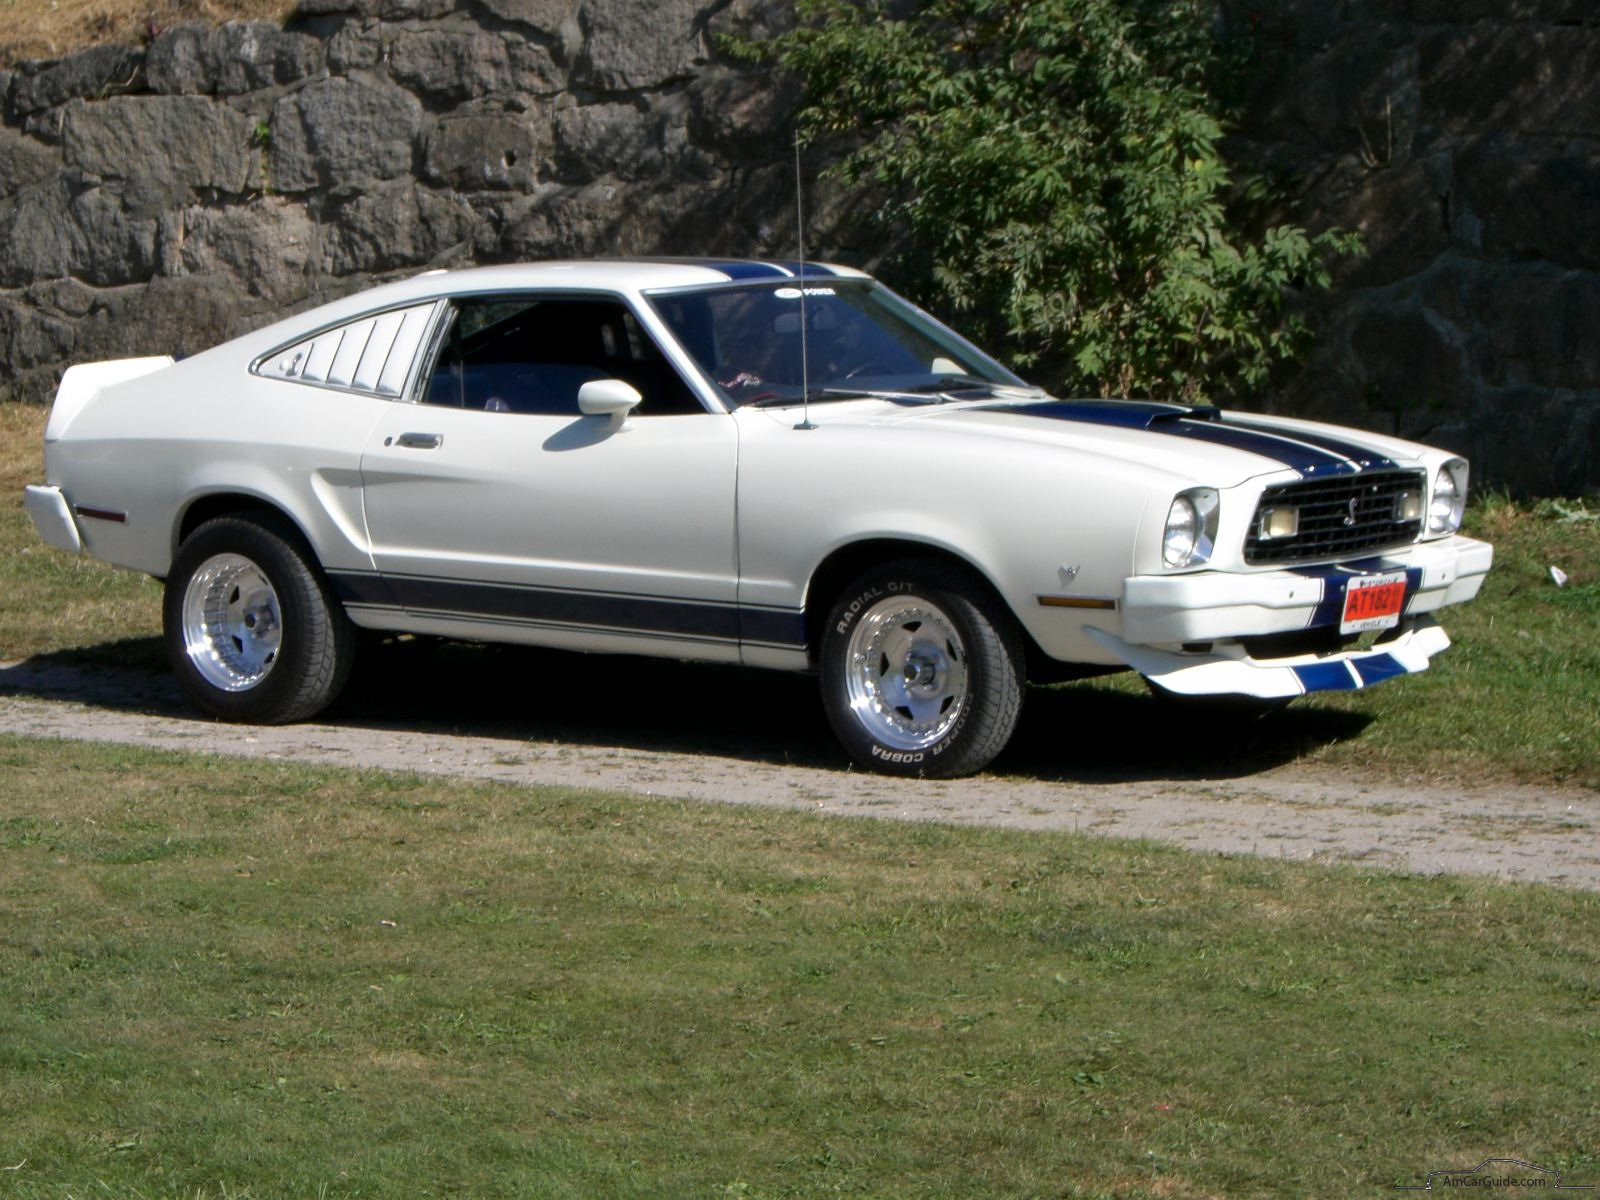 Cl Mustang >> 3DTuning of Mustang Cobra Coupe 1974 3DTuning.com - unique on-line car configurator for more ...